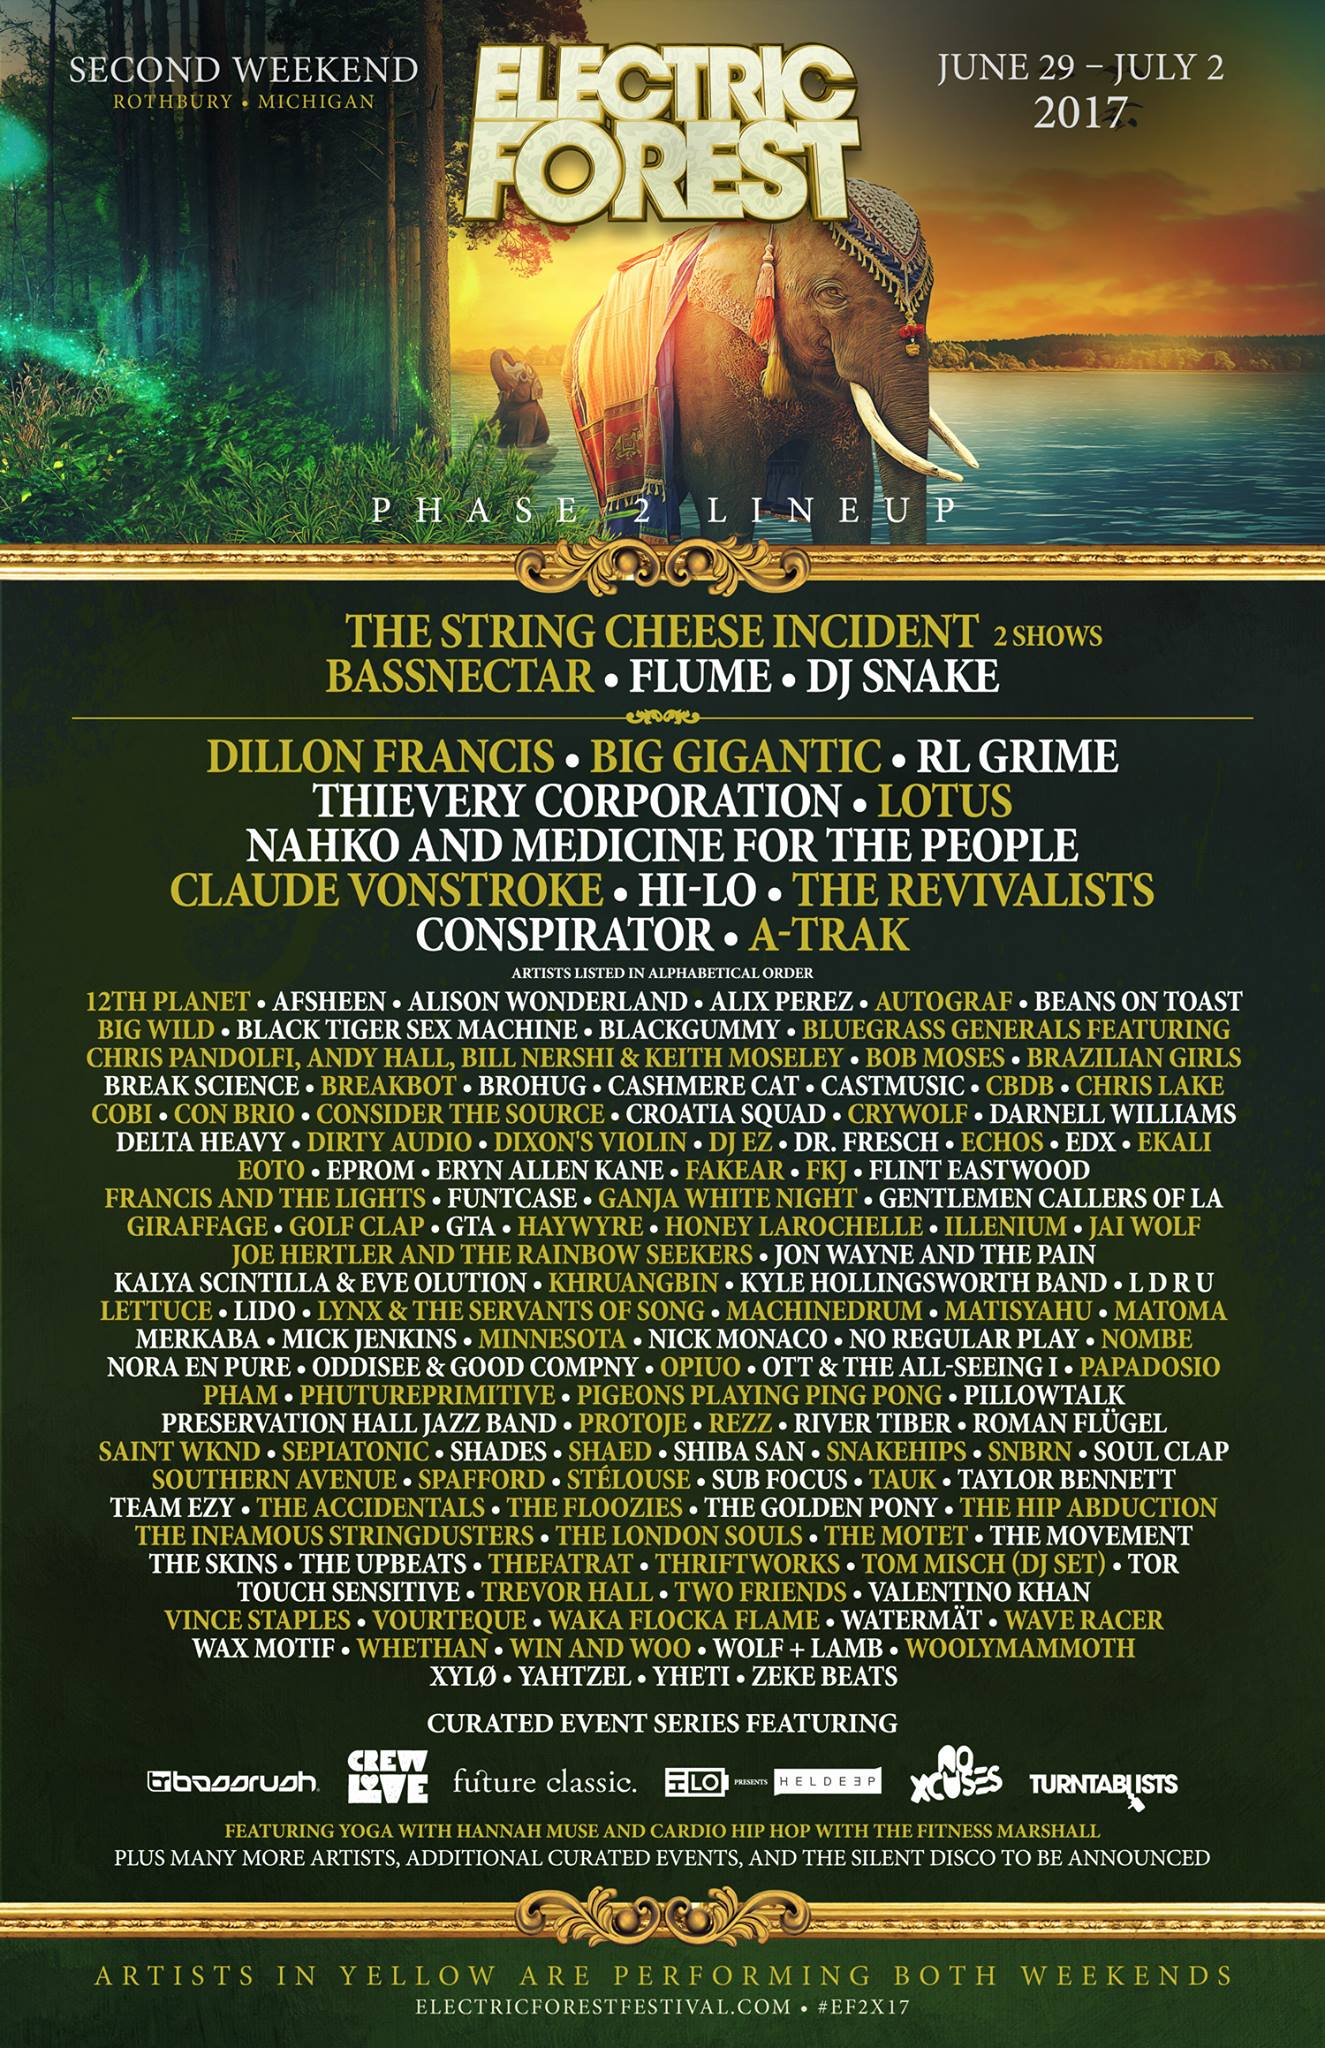 Electric Forest 2017 Lineup Weekend 2